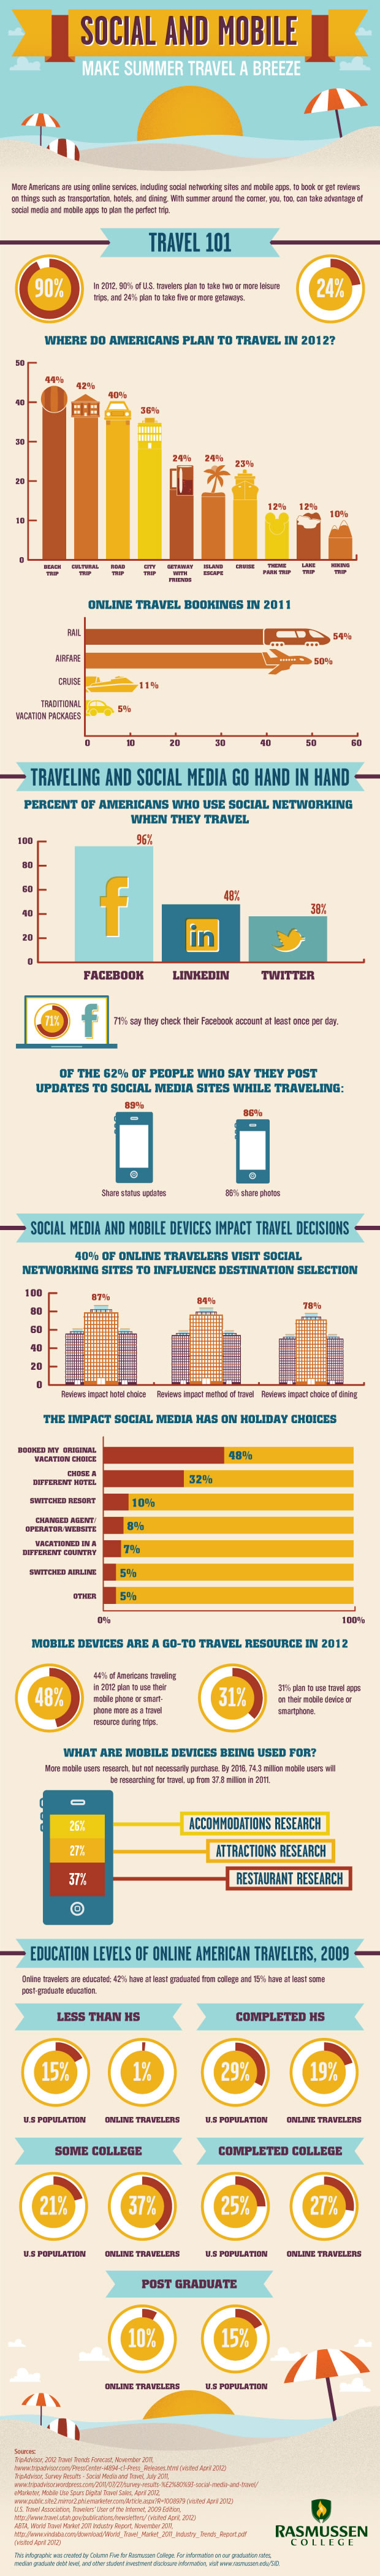 Social-And-Mobile-Make-Summer-Travel-A-Breeze-infographic